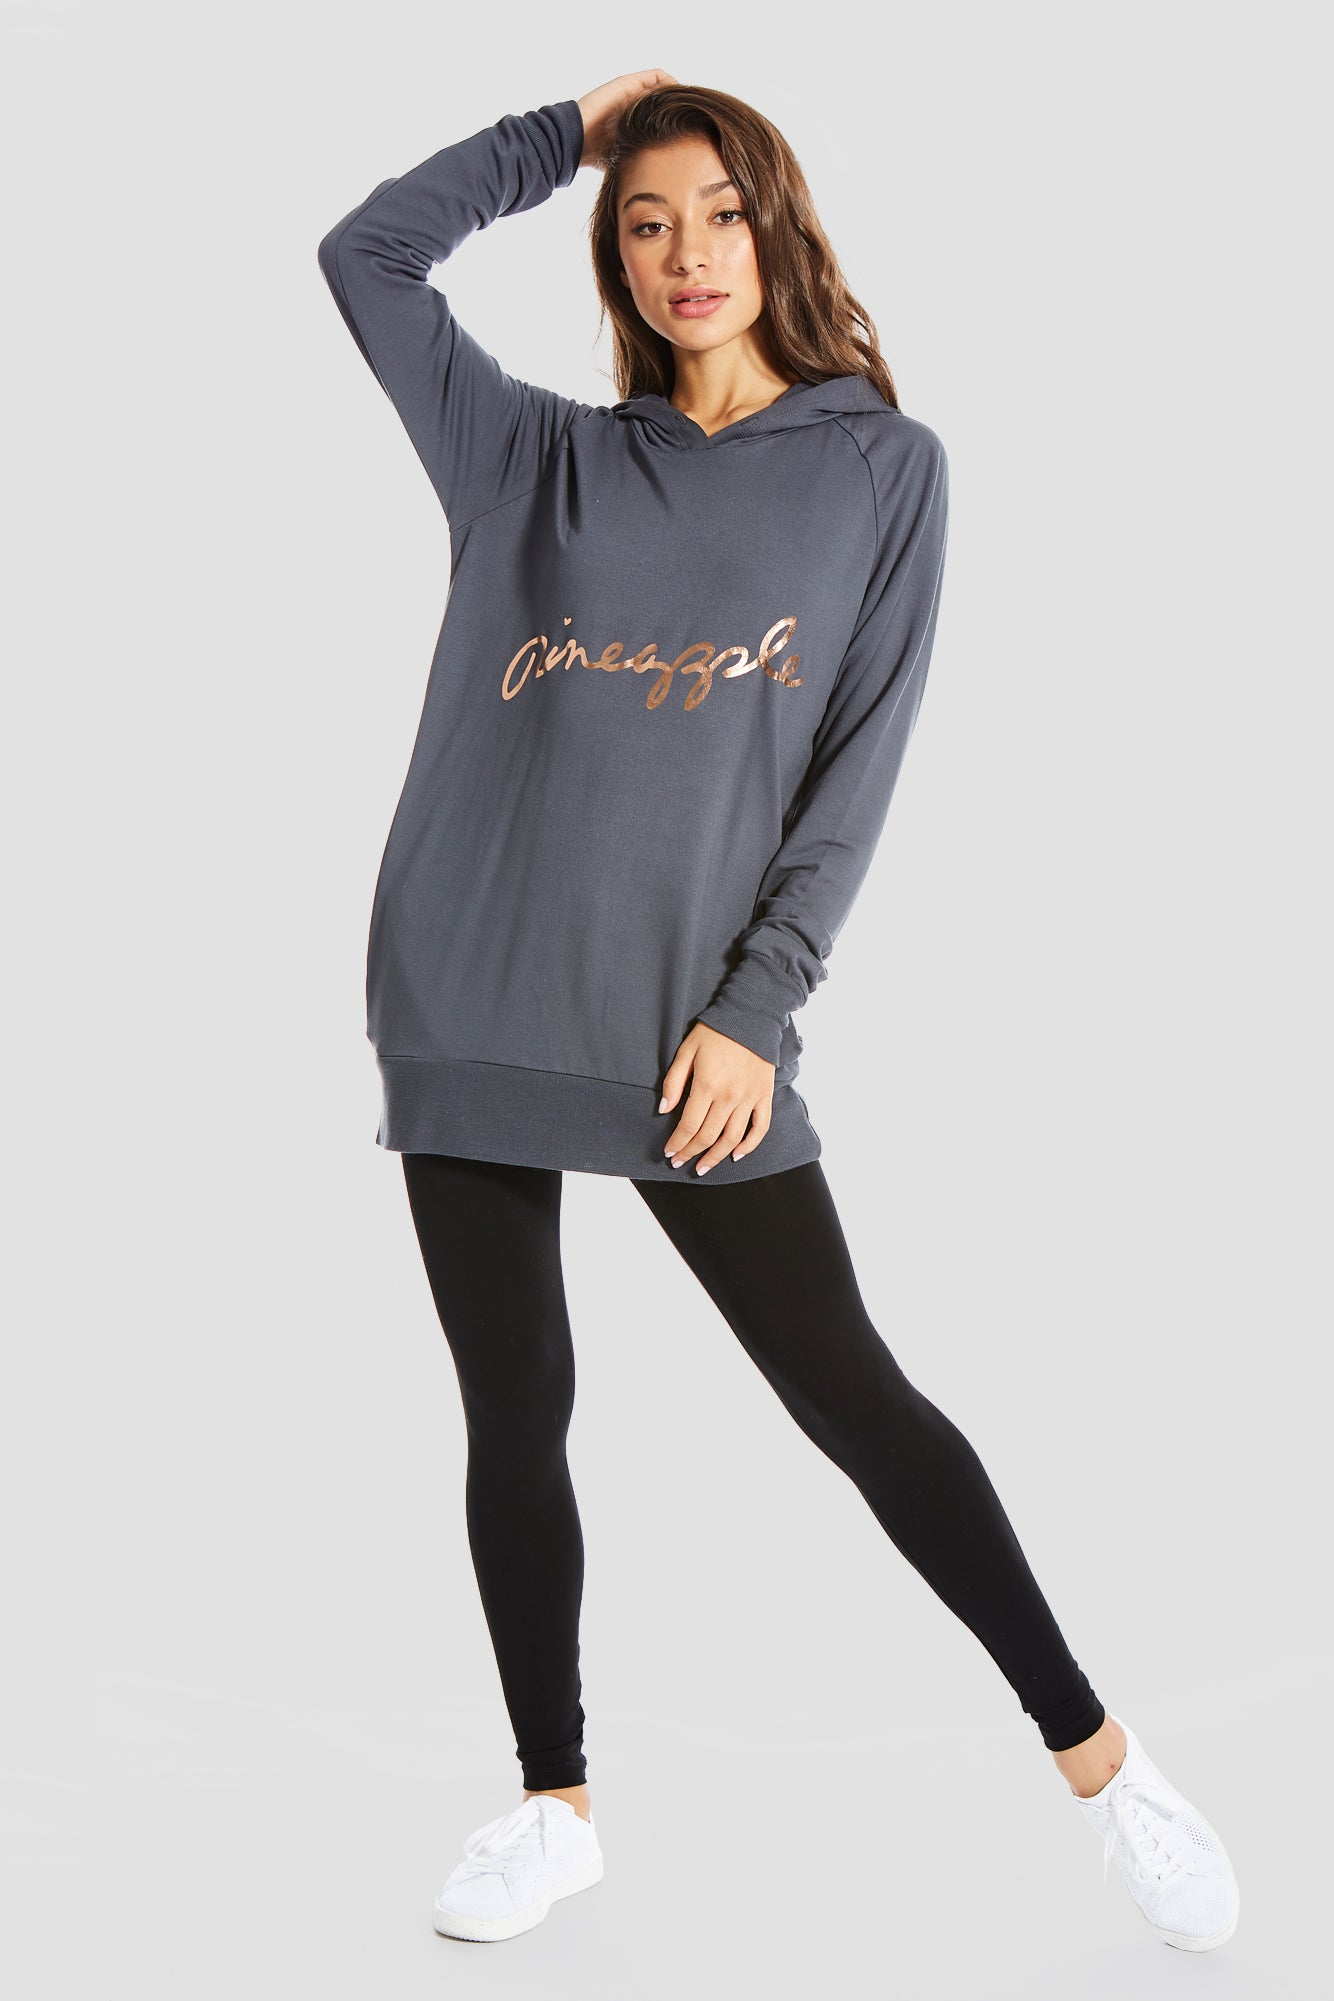 Pineapple Dancewear Women's Charcoal Longline Hoody